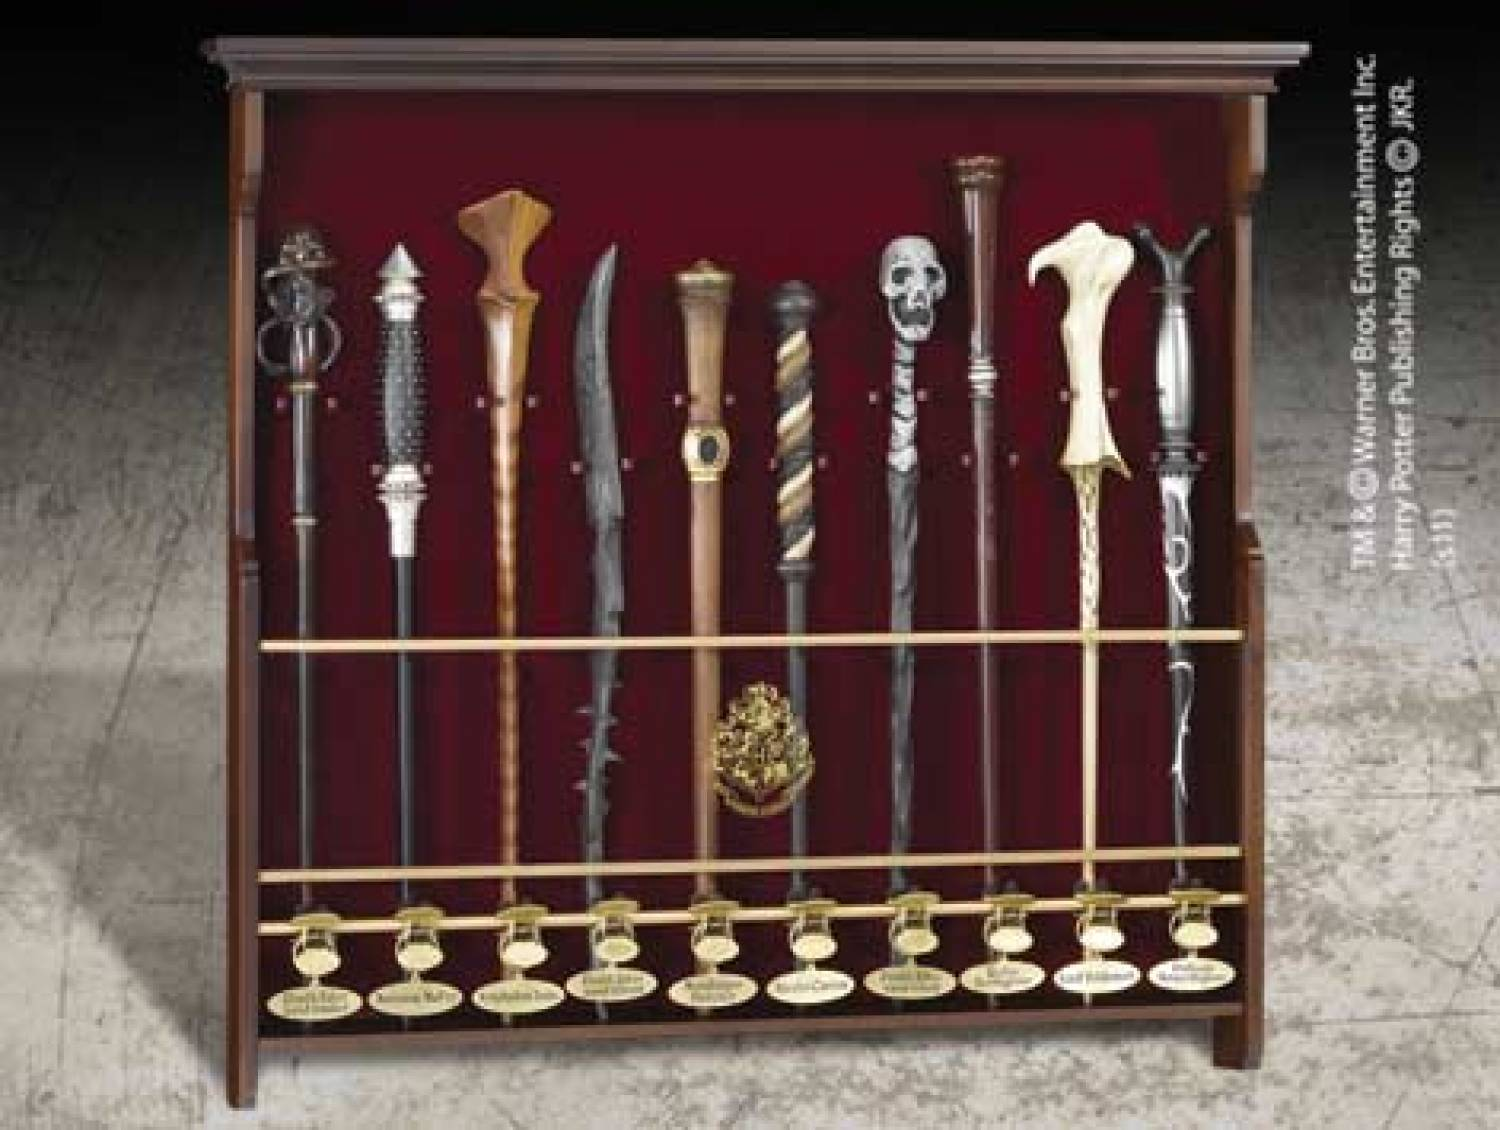 Hp the deathly hallows percy weasley 39 s wand the movie for Harry potter deathly hallows wand